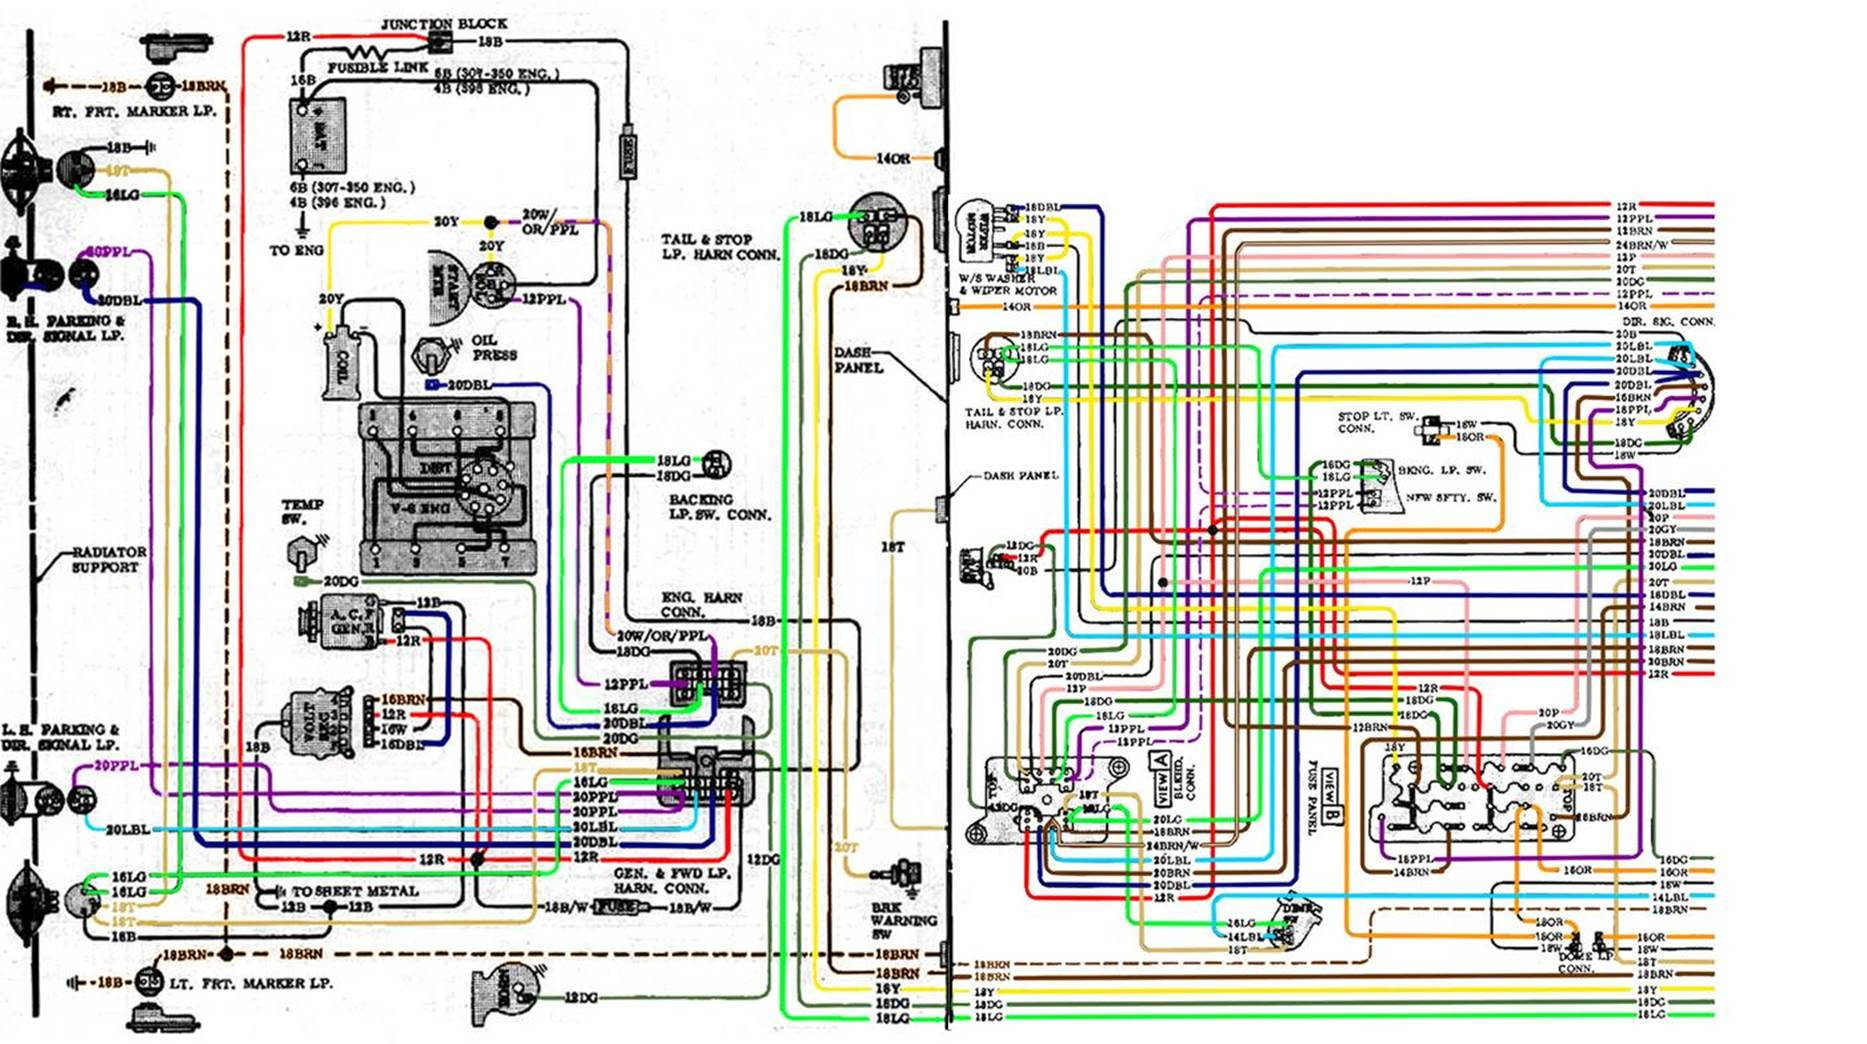 image002 67 72 chevy wiring diagram 68 chevy pickup wiring diagram at nearapp.co